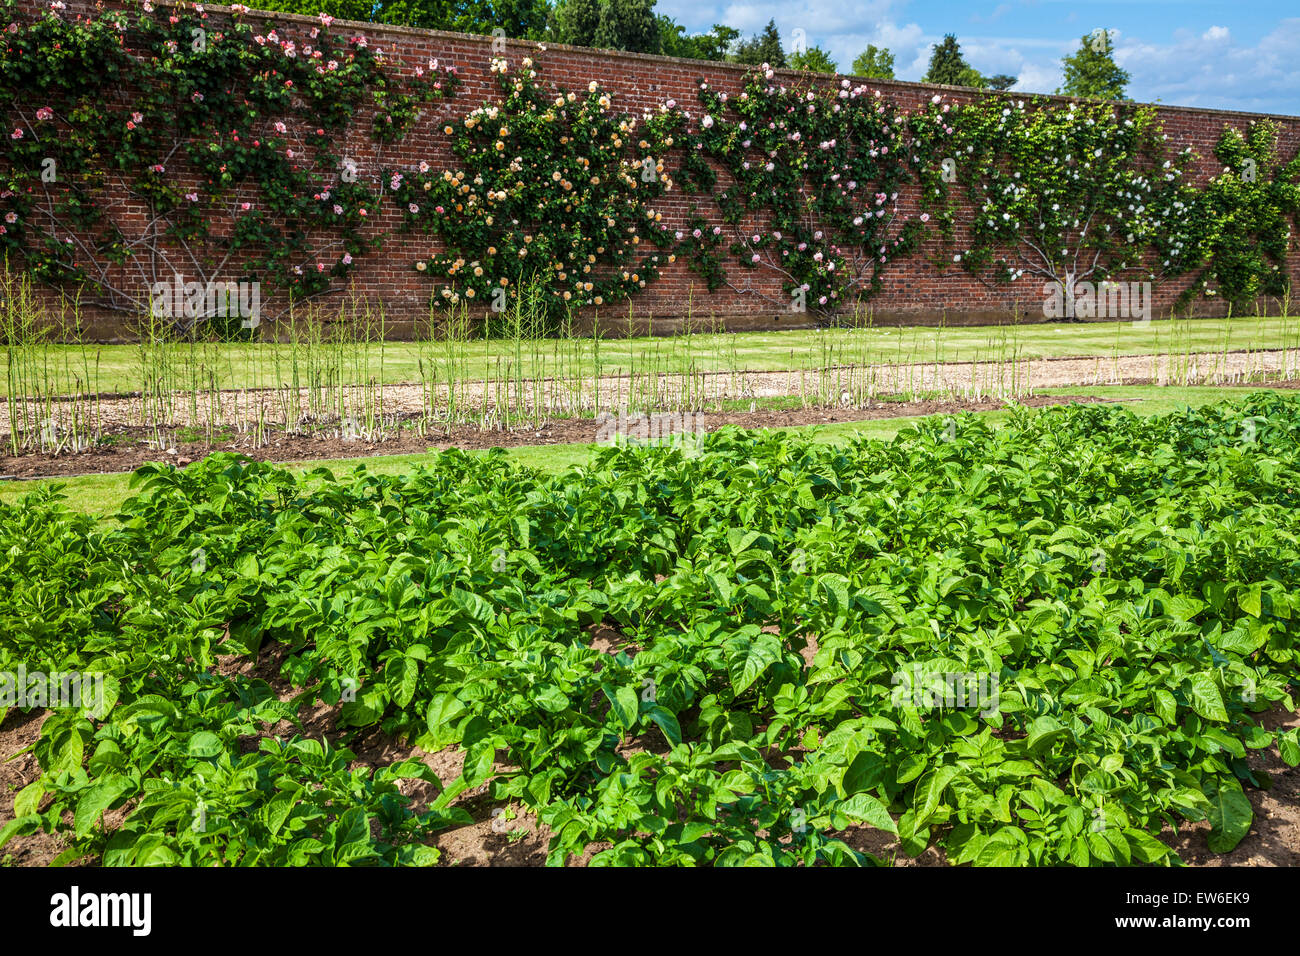 Vegetable garden with climbing roses in the walled gardens of Bowood House in Wiltshire. - Stock Image